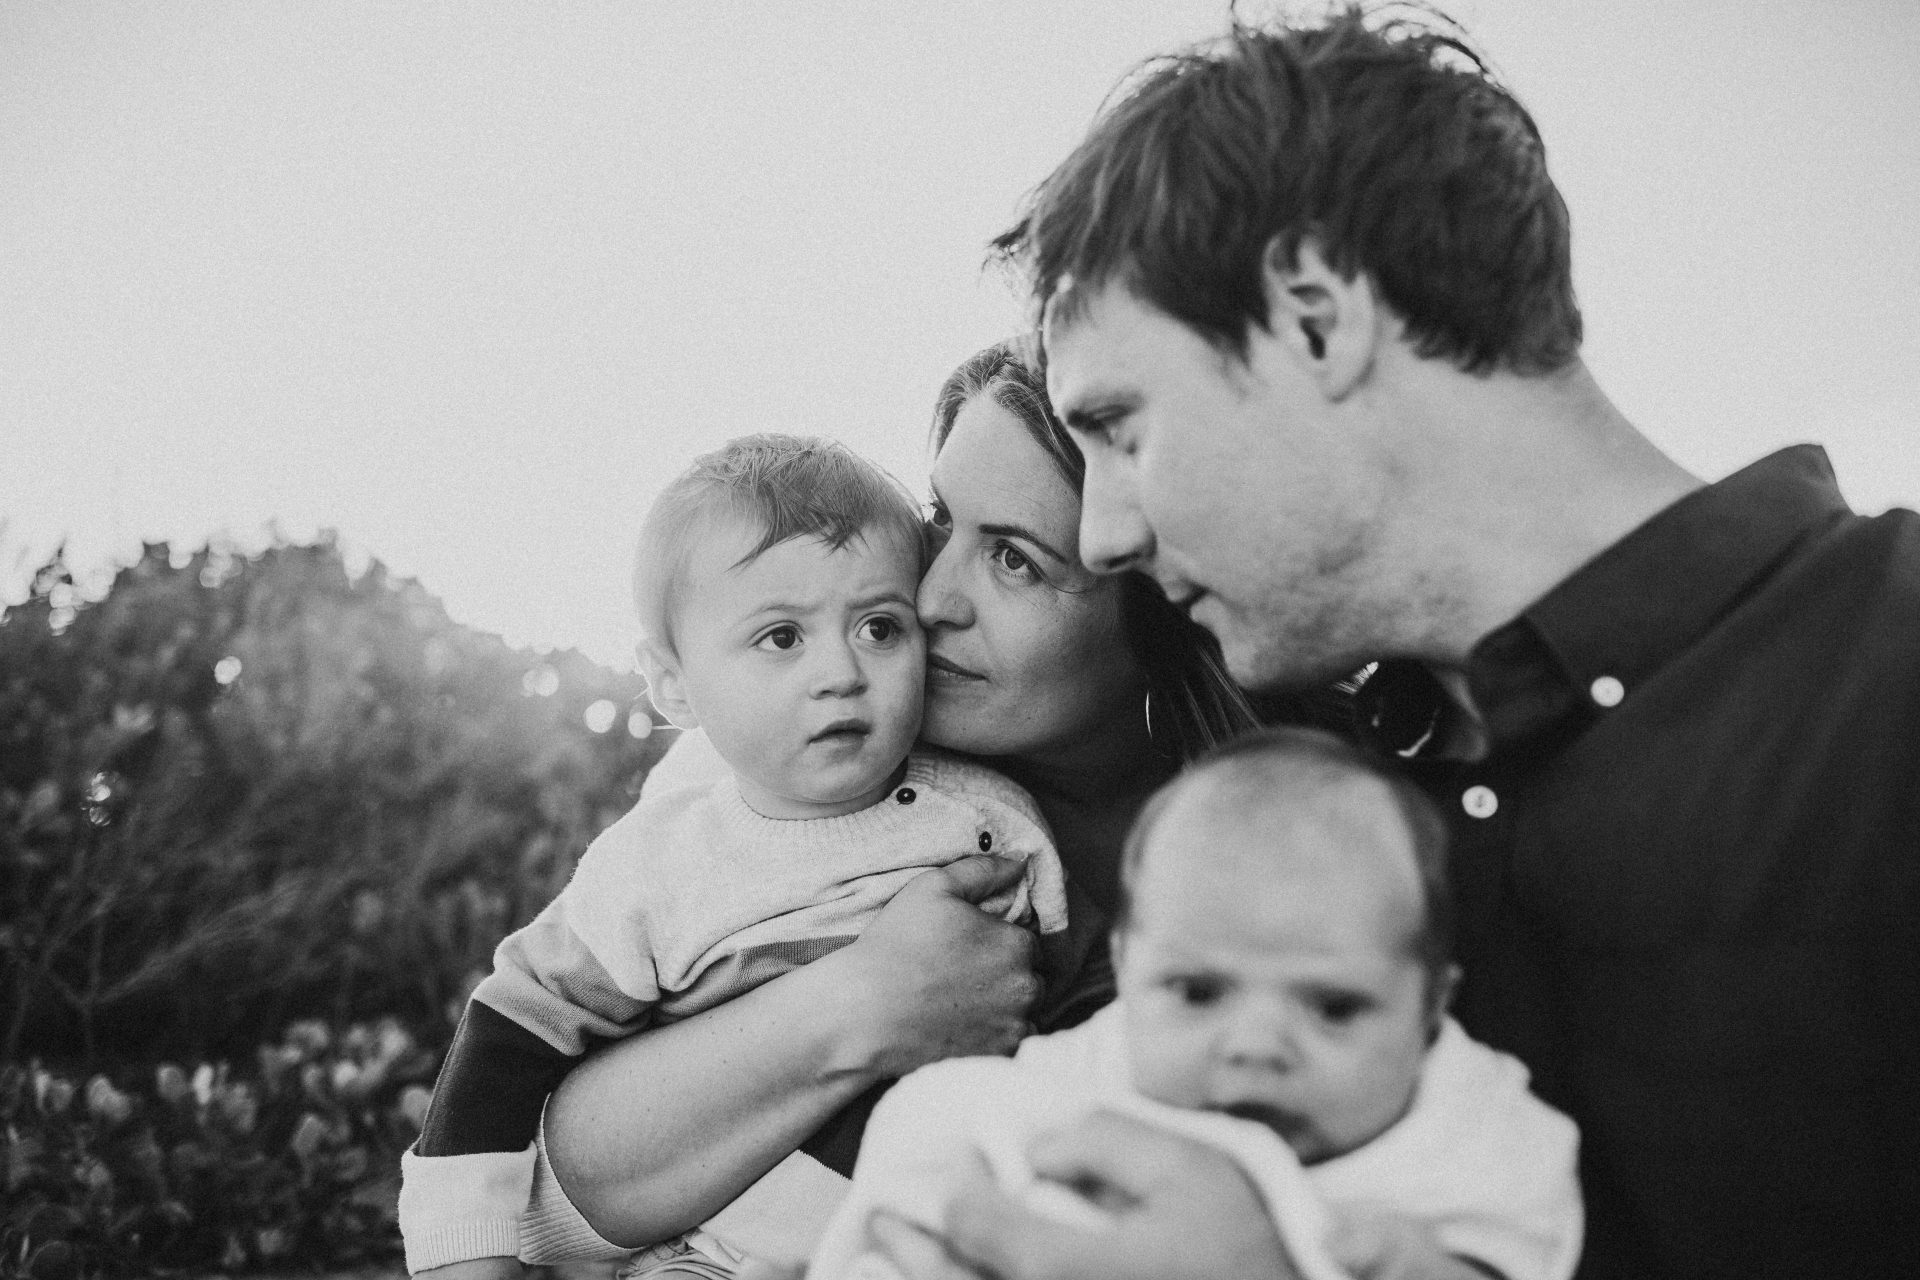 Black and white group shot of young family cuddled together during lifestyle photography session